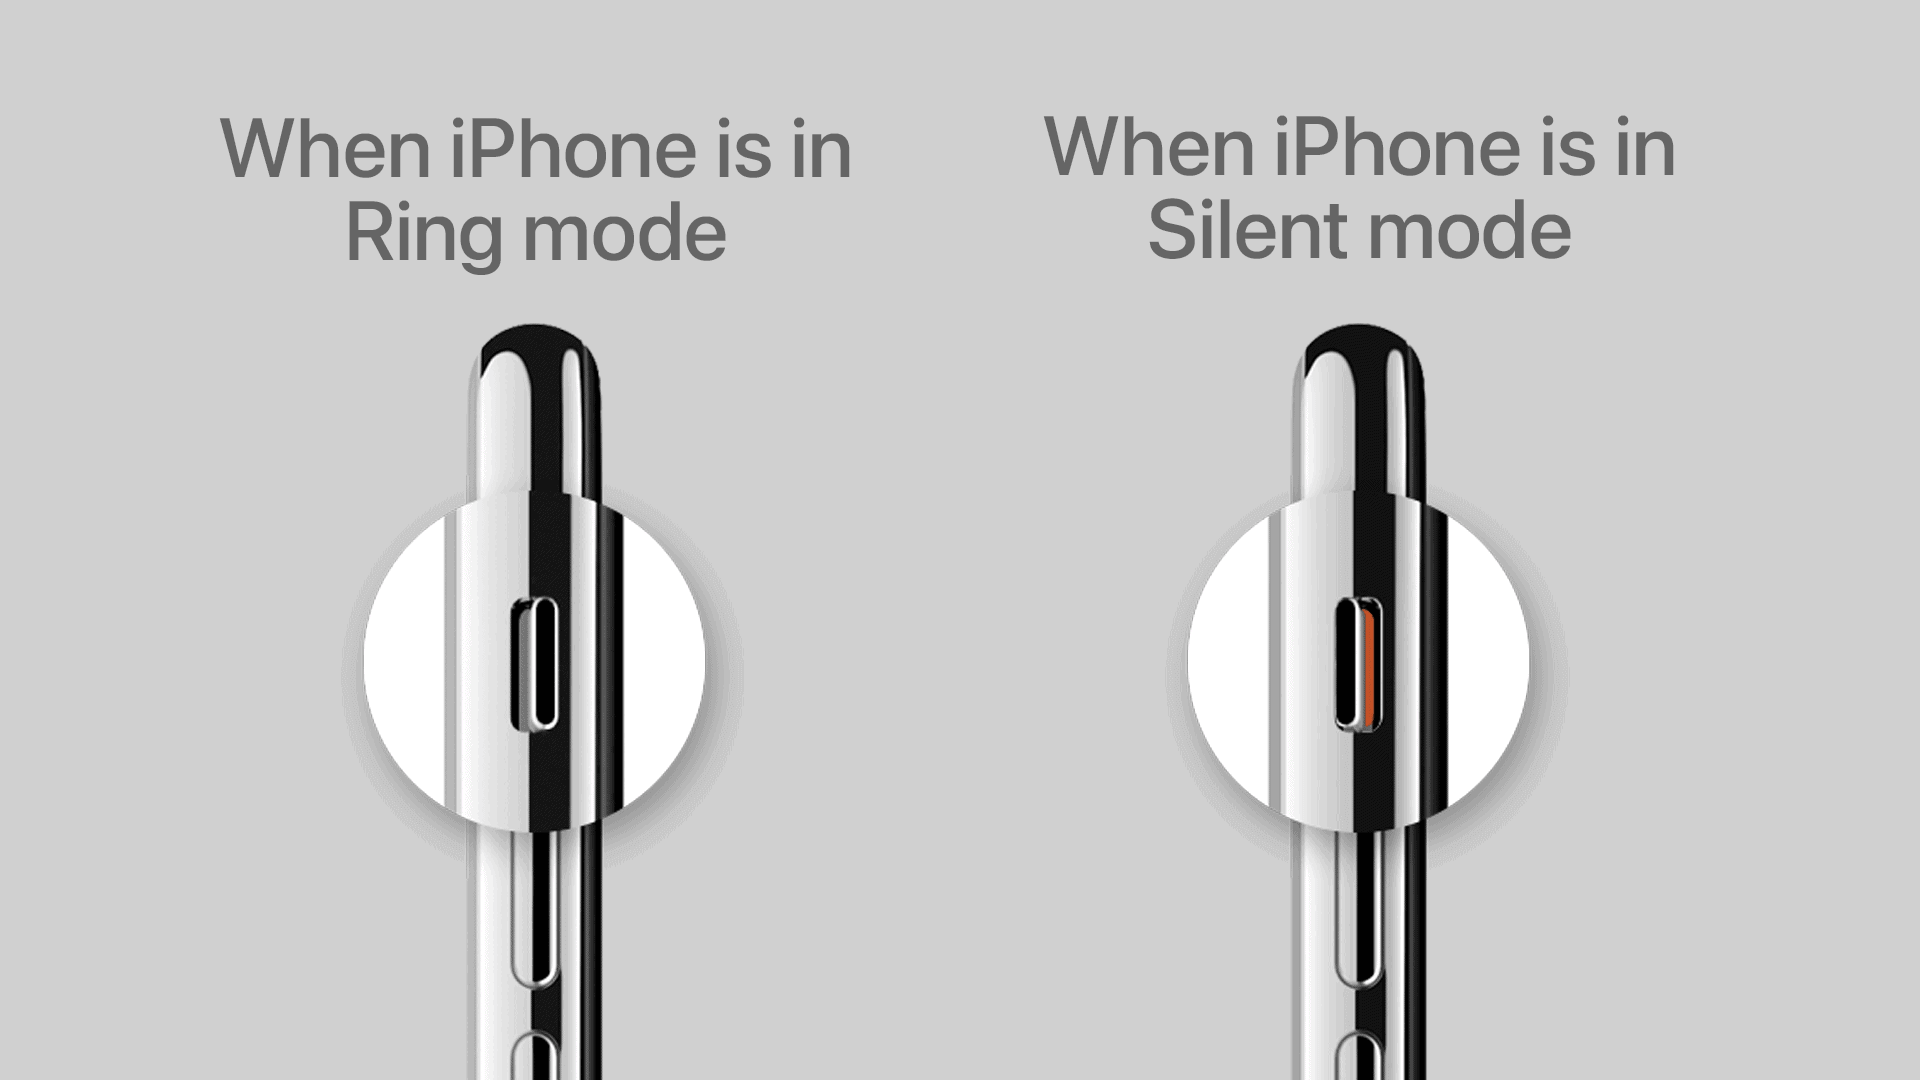 Make sure iPhone is not silent